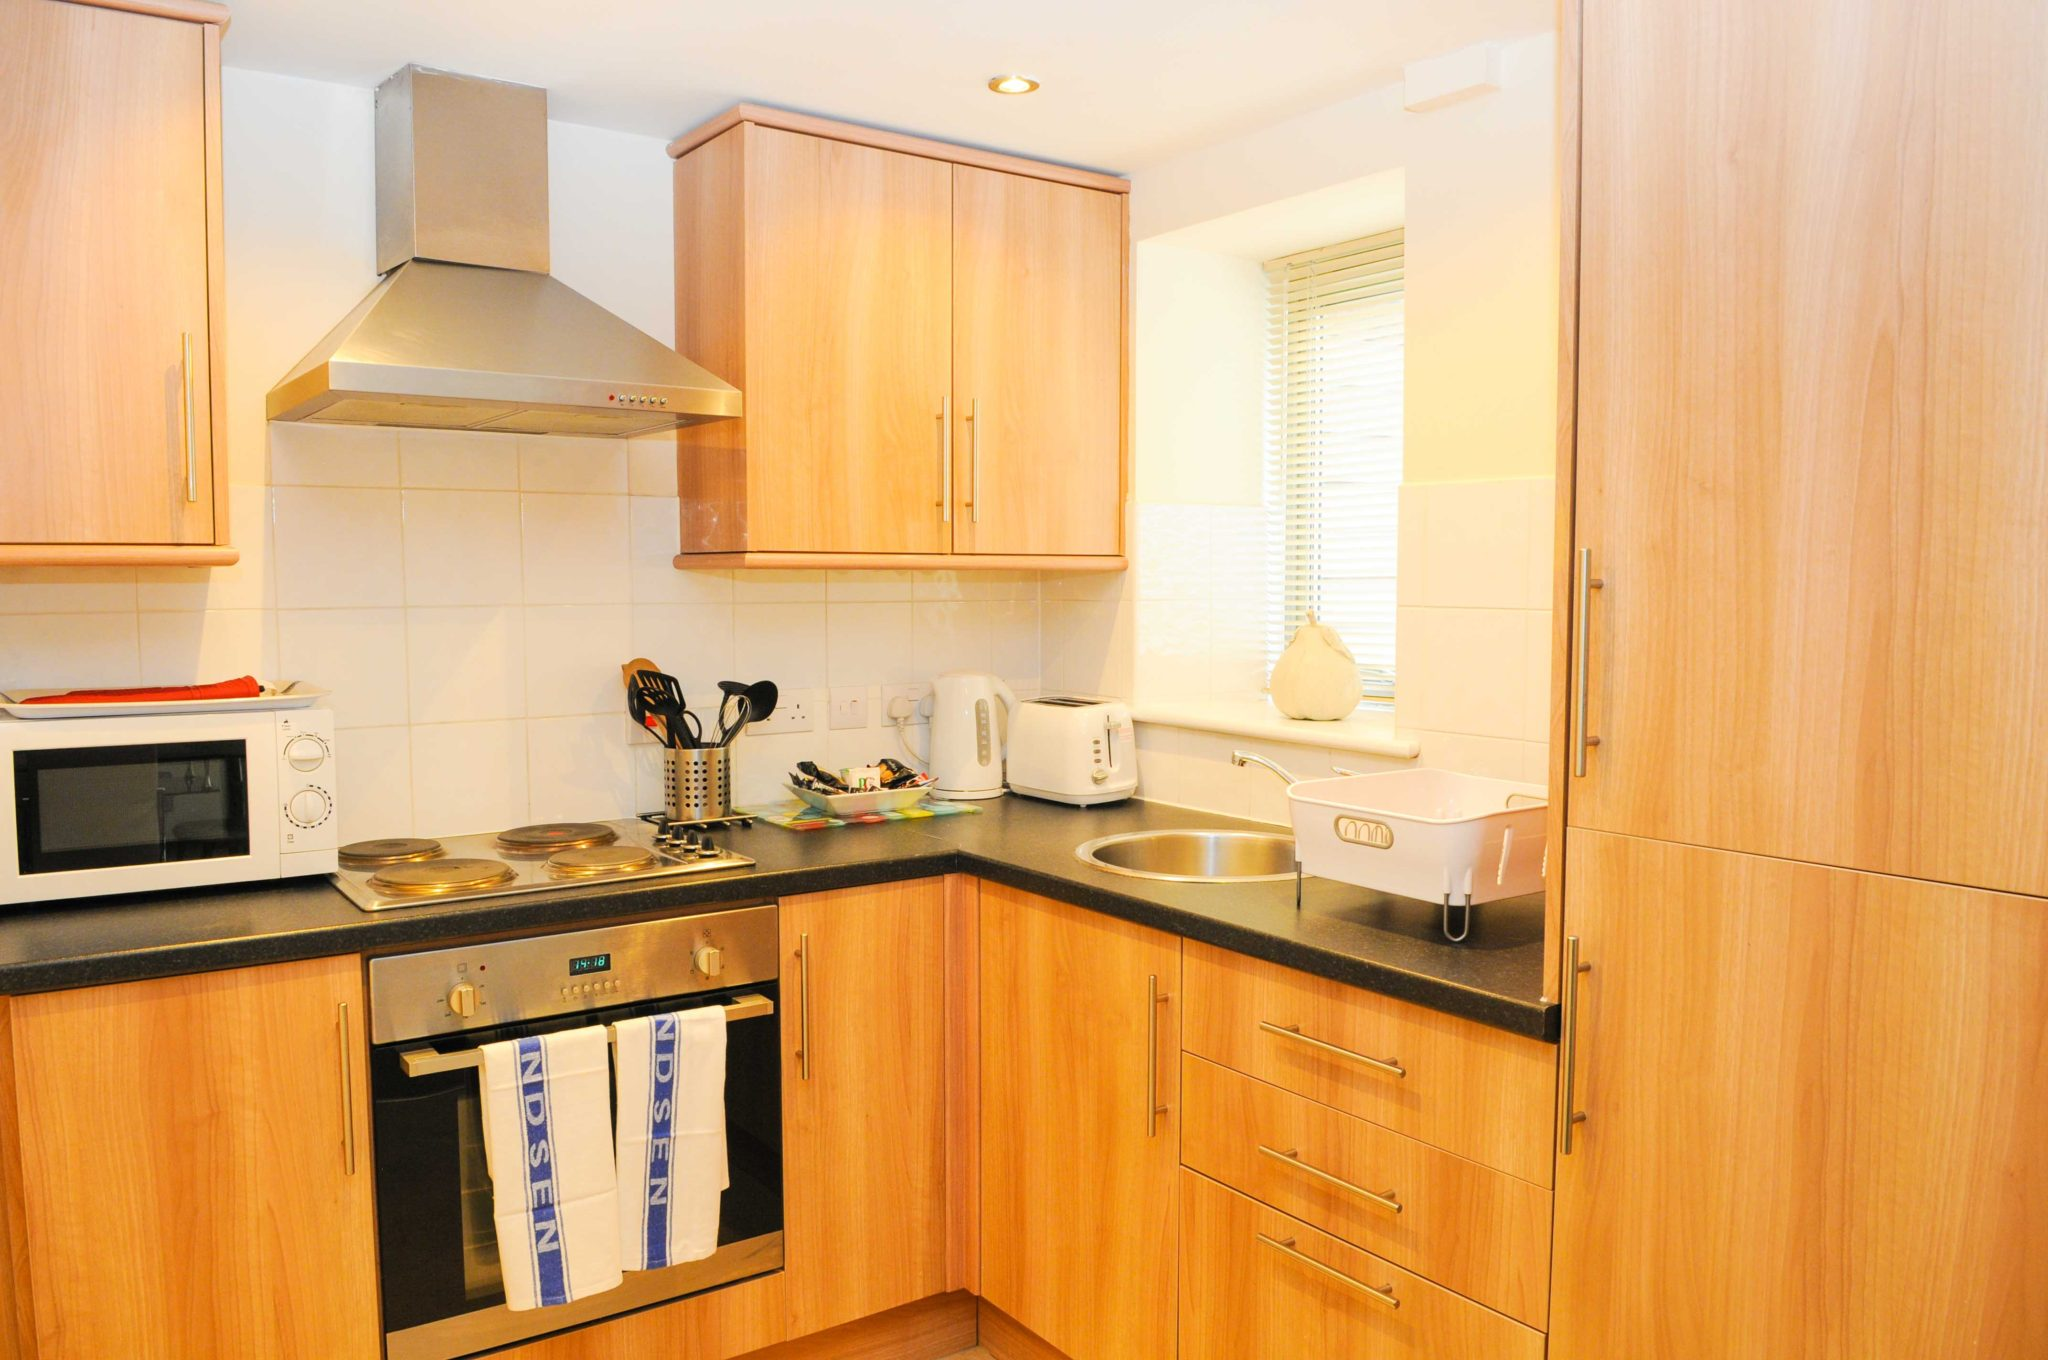 Bristol-Serviced-Accommodation-UK-|-Cheap-Cotham-Lawn-Apartments-|-Free-Wi-Fi|-Fullt-Equipped-Kitchen-|-Parking-|0208-6913920|-Urban-Stay